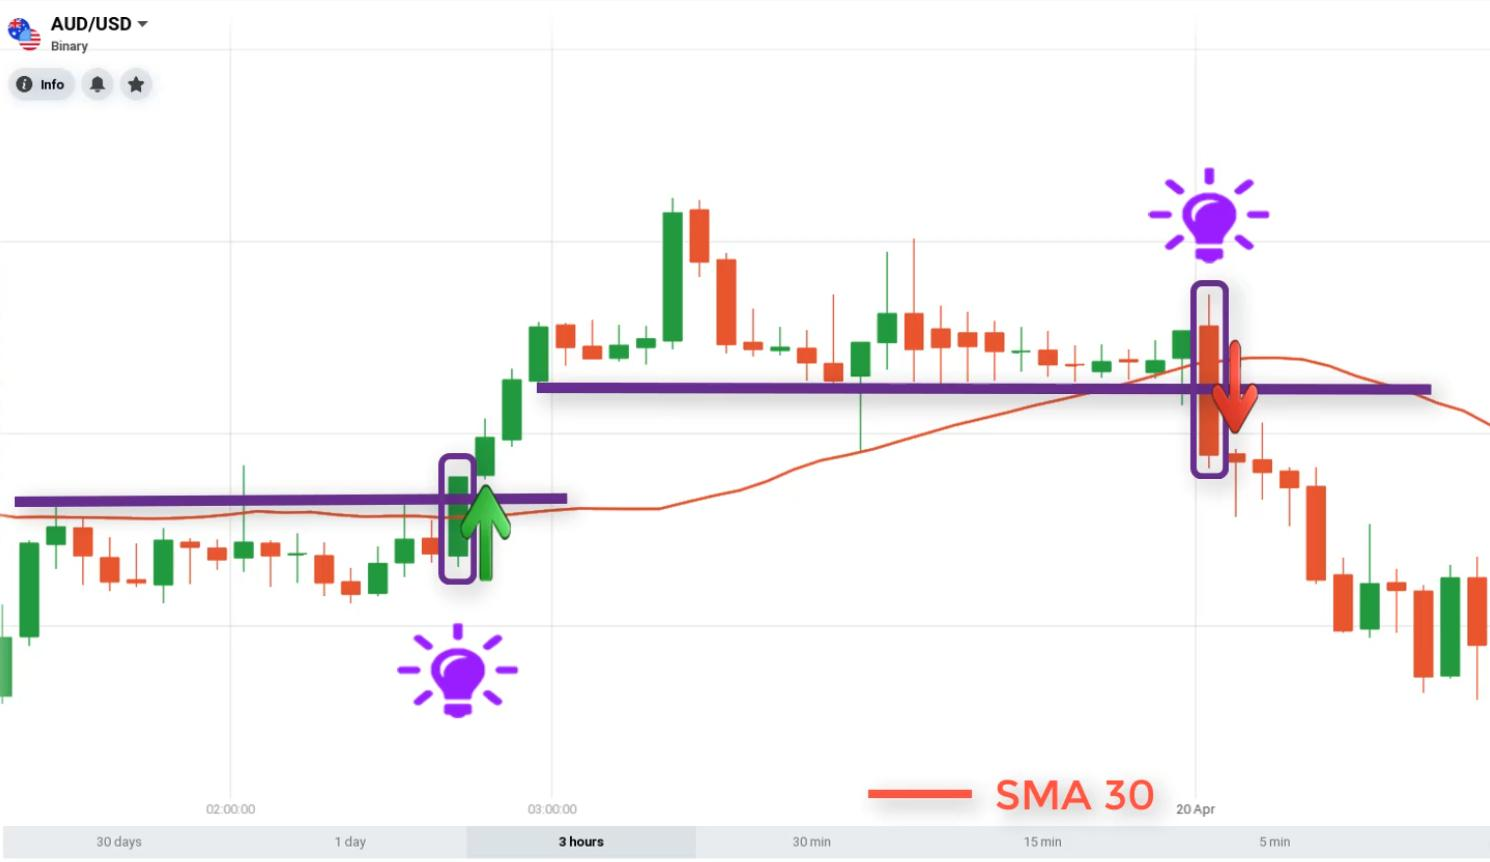 How to open a binary option when using the SMA30 combined with resistance and support